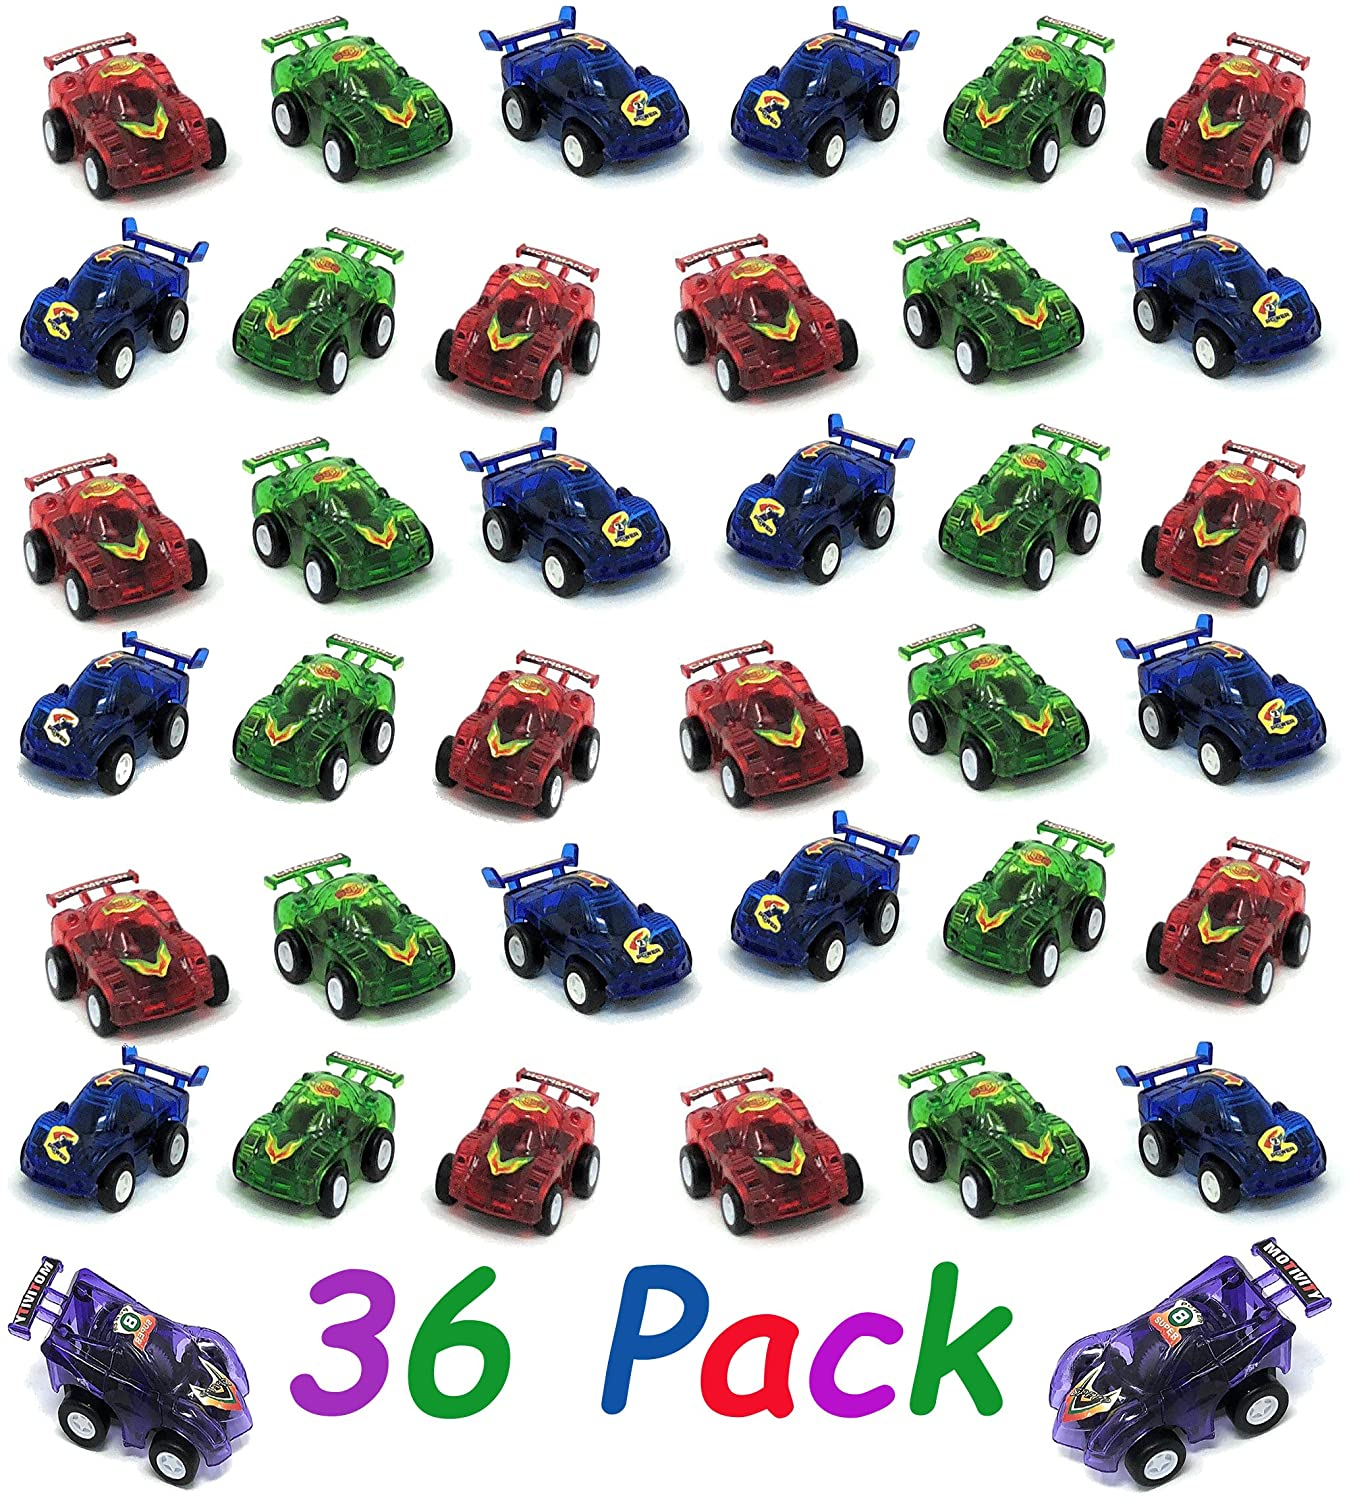 4E's Novelty 36 Pack Plastic Pullback Racing Cars, Assorted Party Pack For Kids, Fun Gift Party Giveaway, 2.5